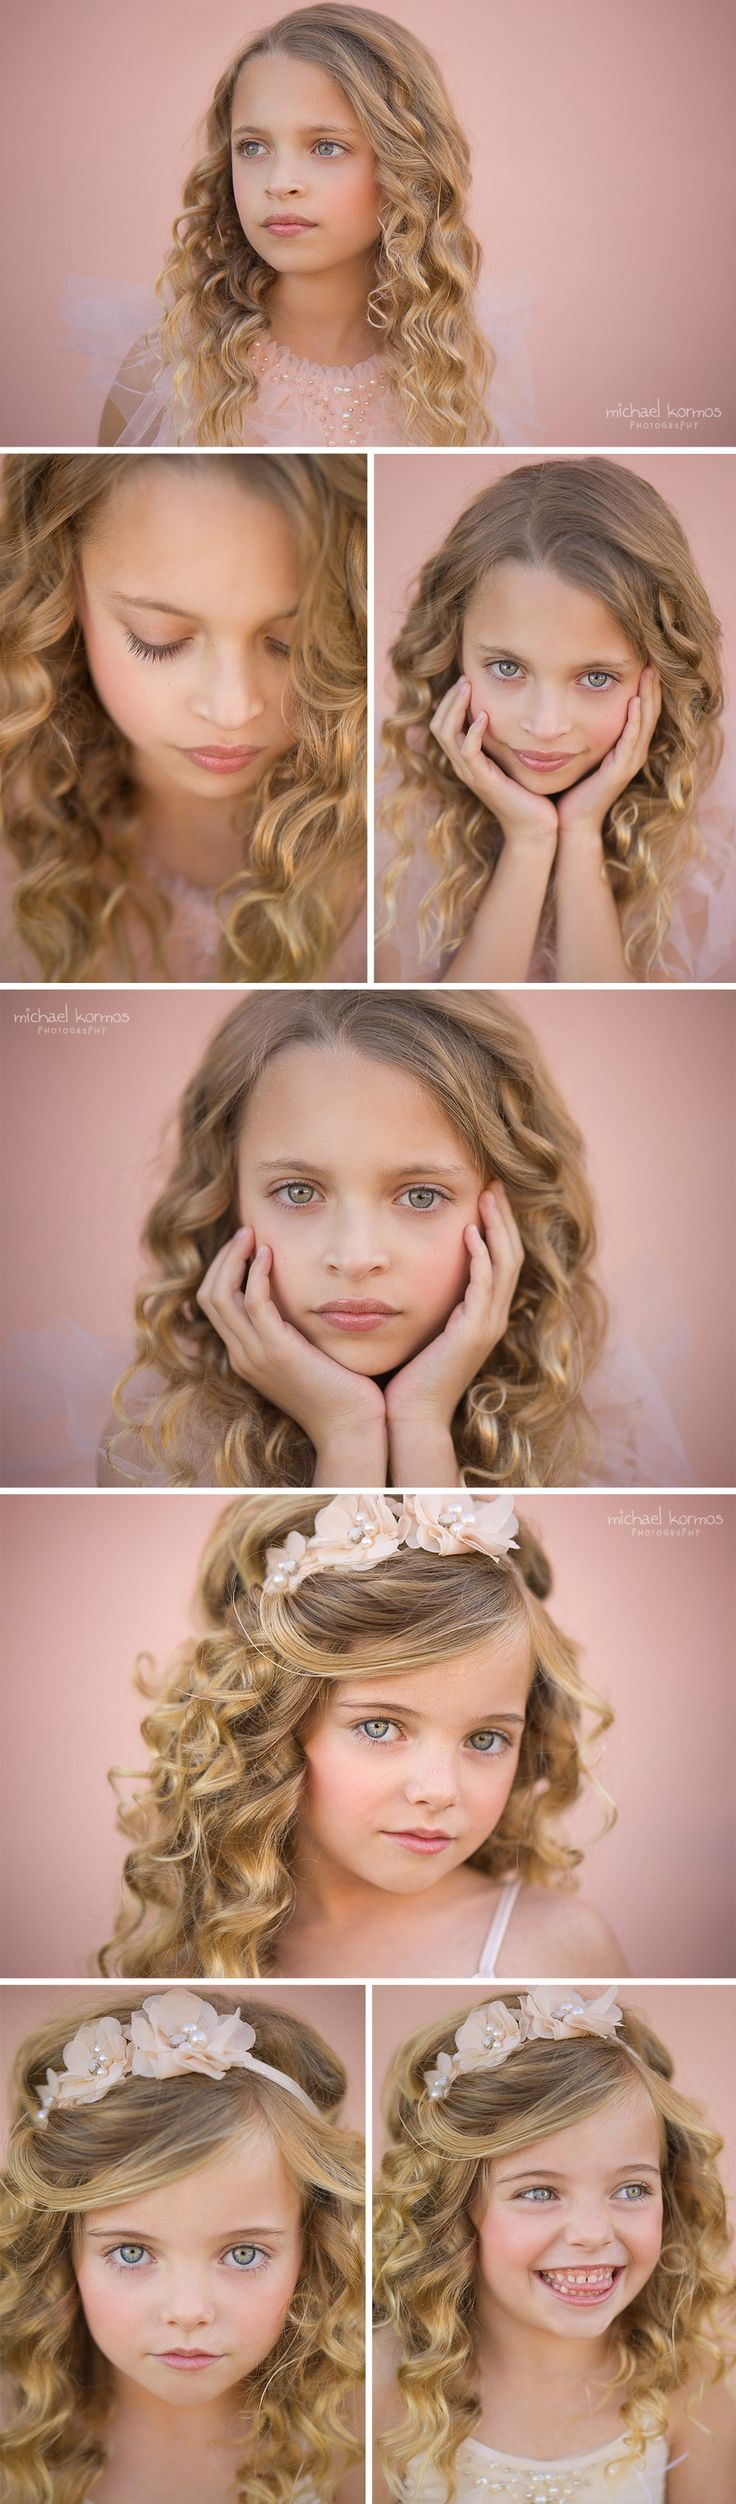 nyc child model headshot photography